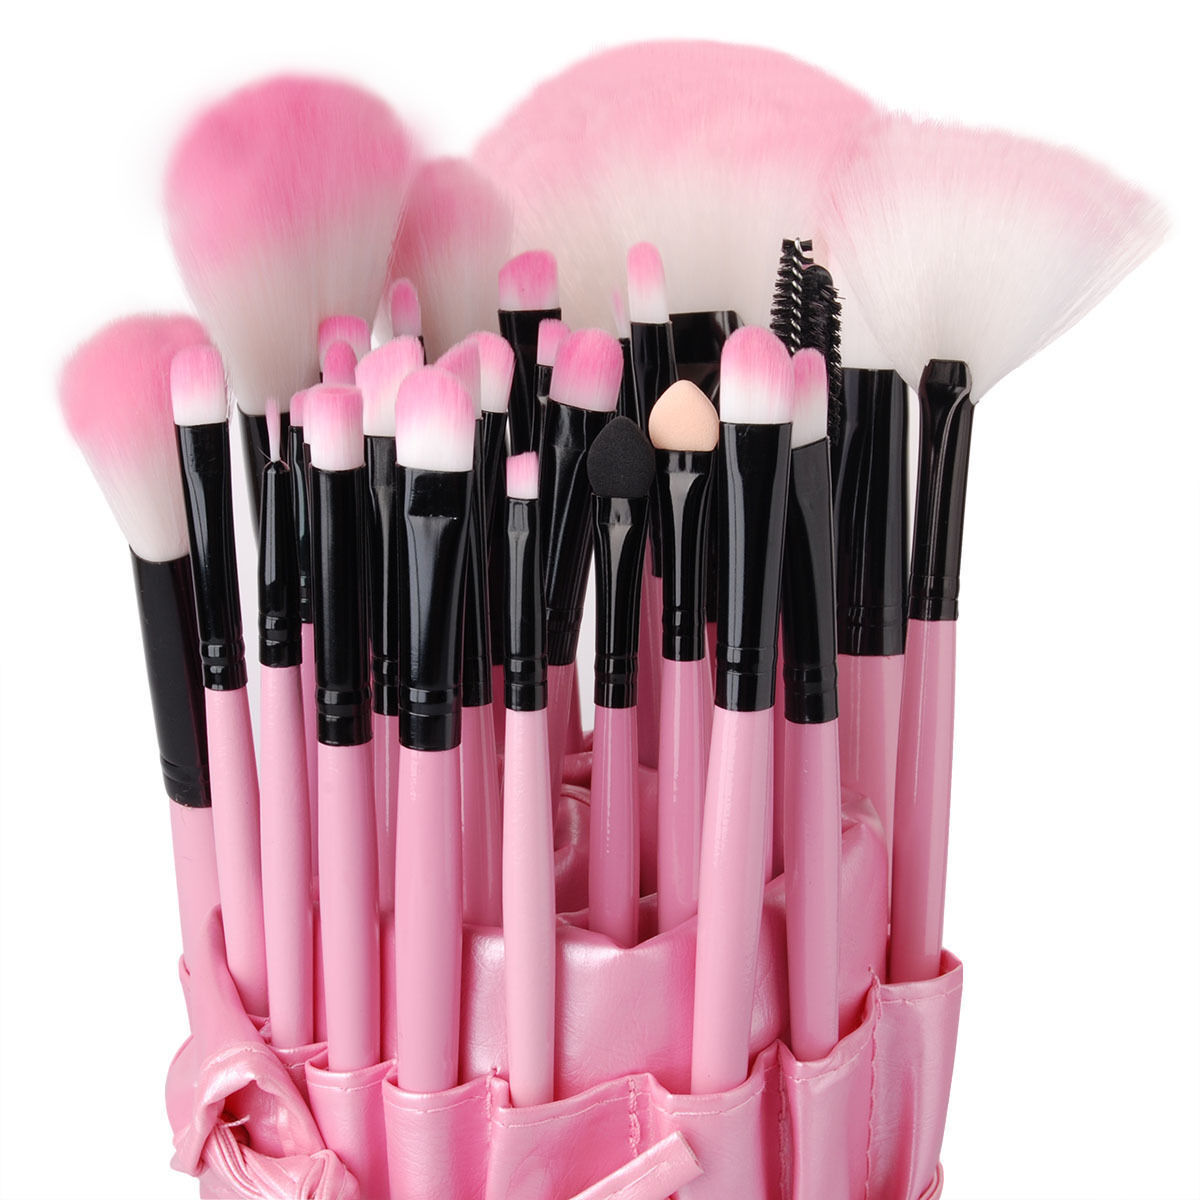 32tlg kosmetik pinsel professionelle makeup brush schminkpinsel set fashion rosa ebay. Black Bedroom Furniture Sets. Home Design Ideas